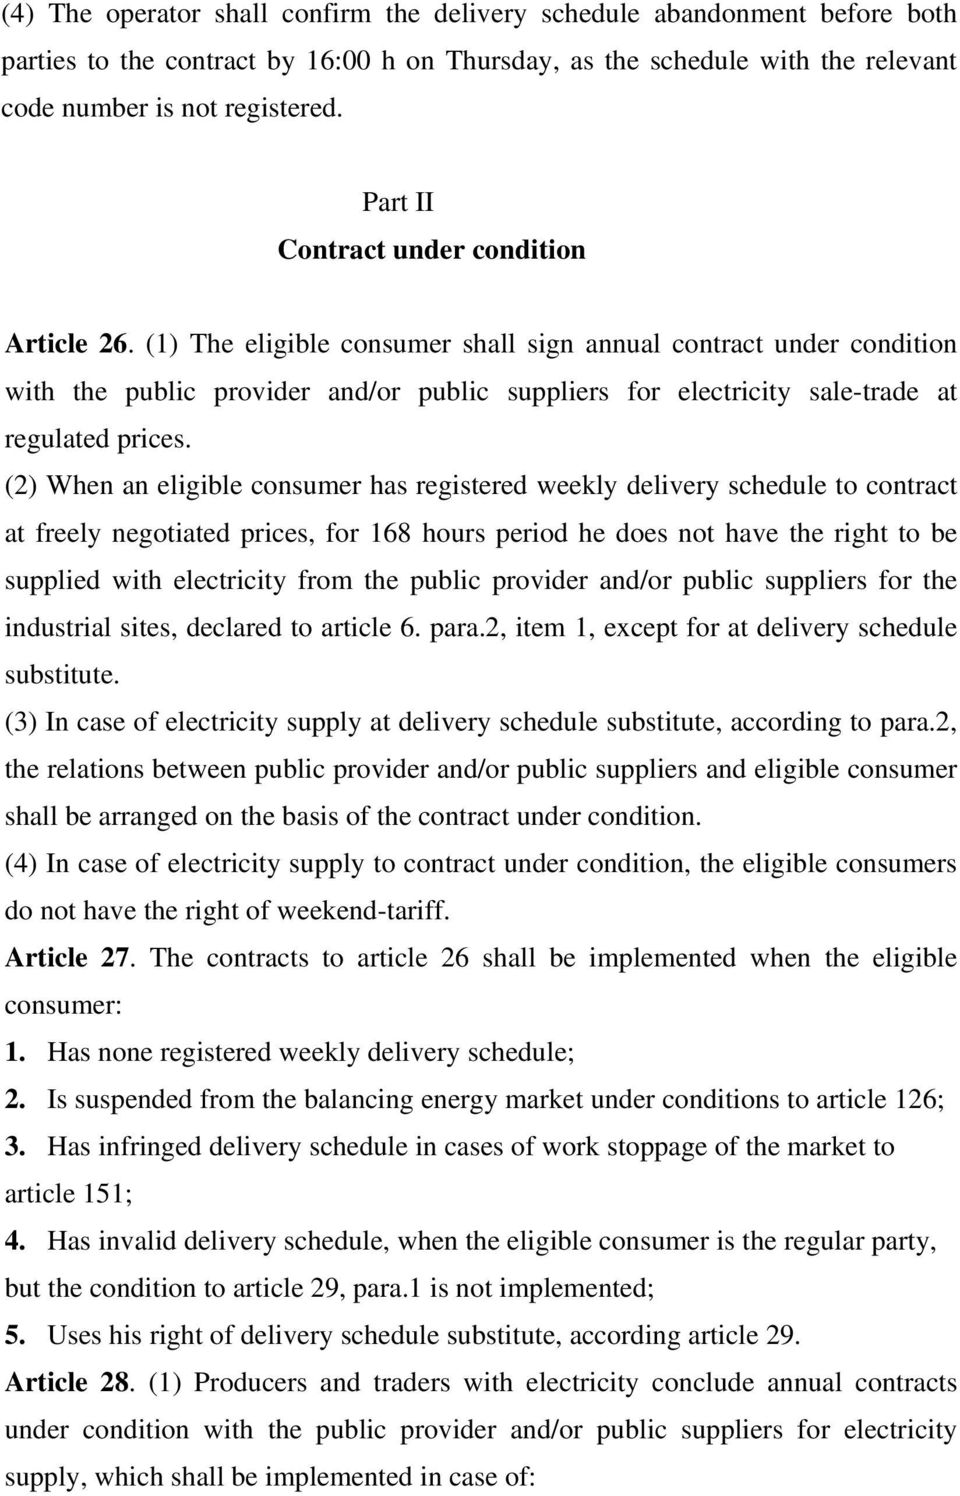 (1) The eligible consumer shall sign annual contract under condition with the public provider and/or public suppliers for electricity sale-trade at regulated prices.